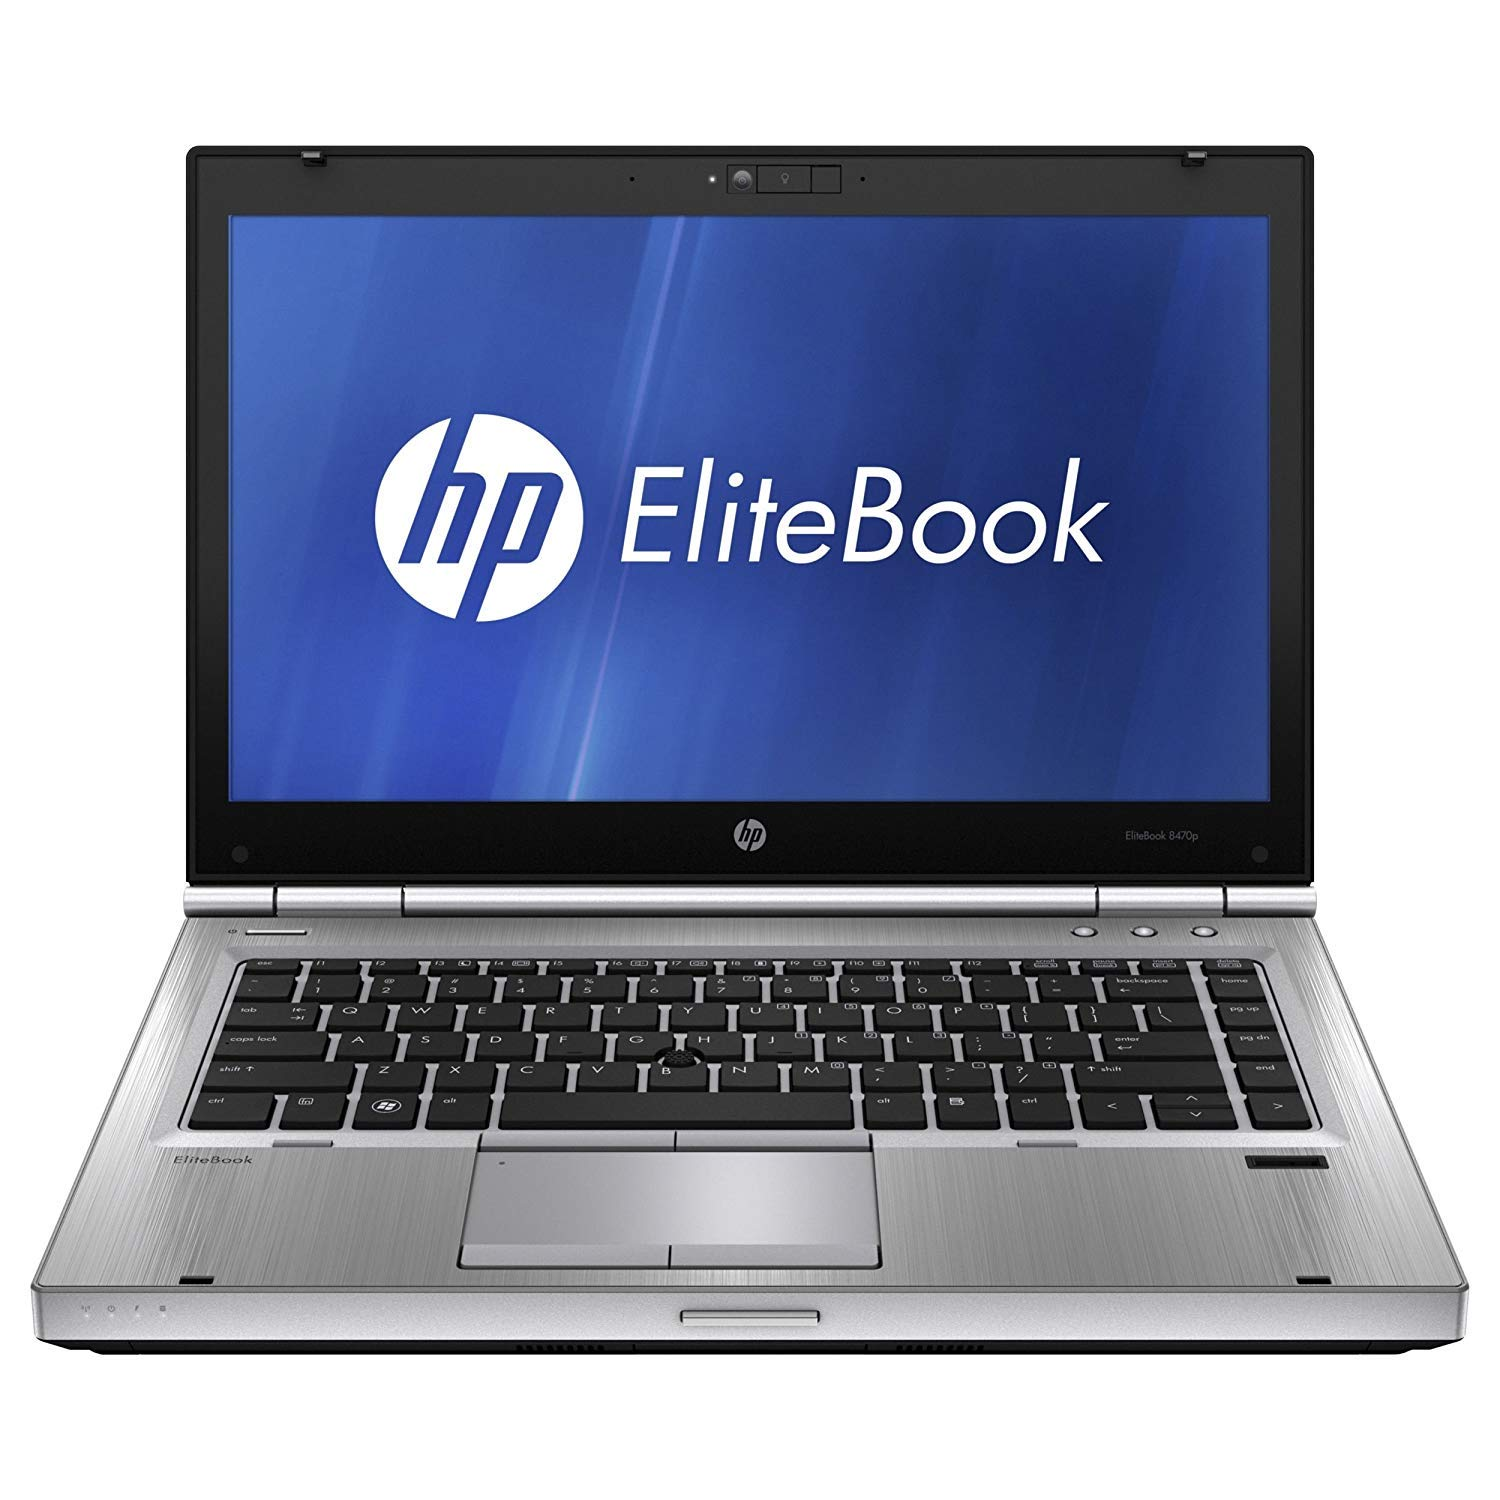 HP Elitebook 8470p Laptop - Core i5 2 5ghz - 8GB DDR3 - 500GB HDD - DVD -  Windows 10 home - (Renewed)